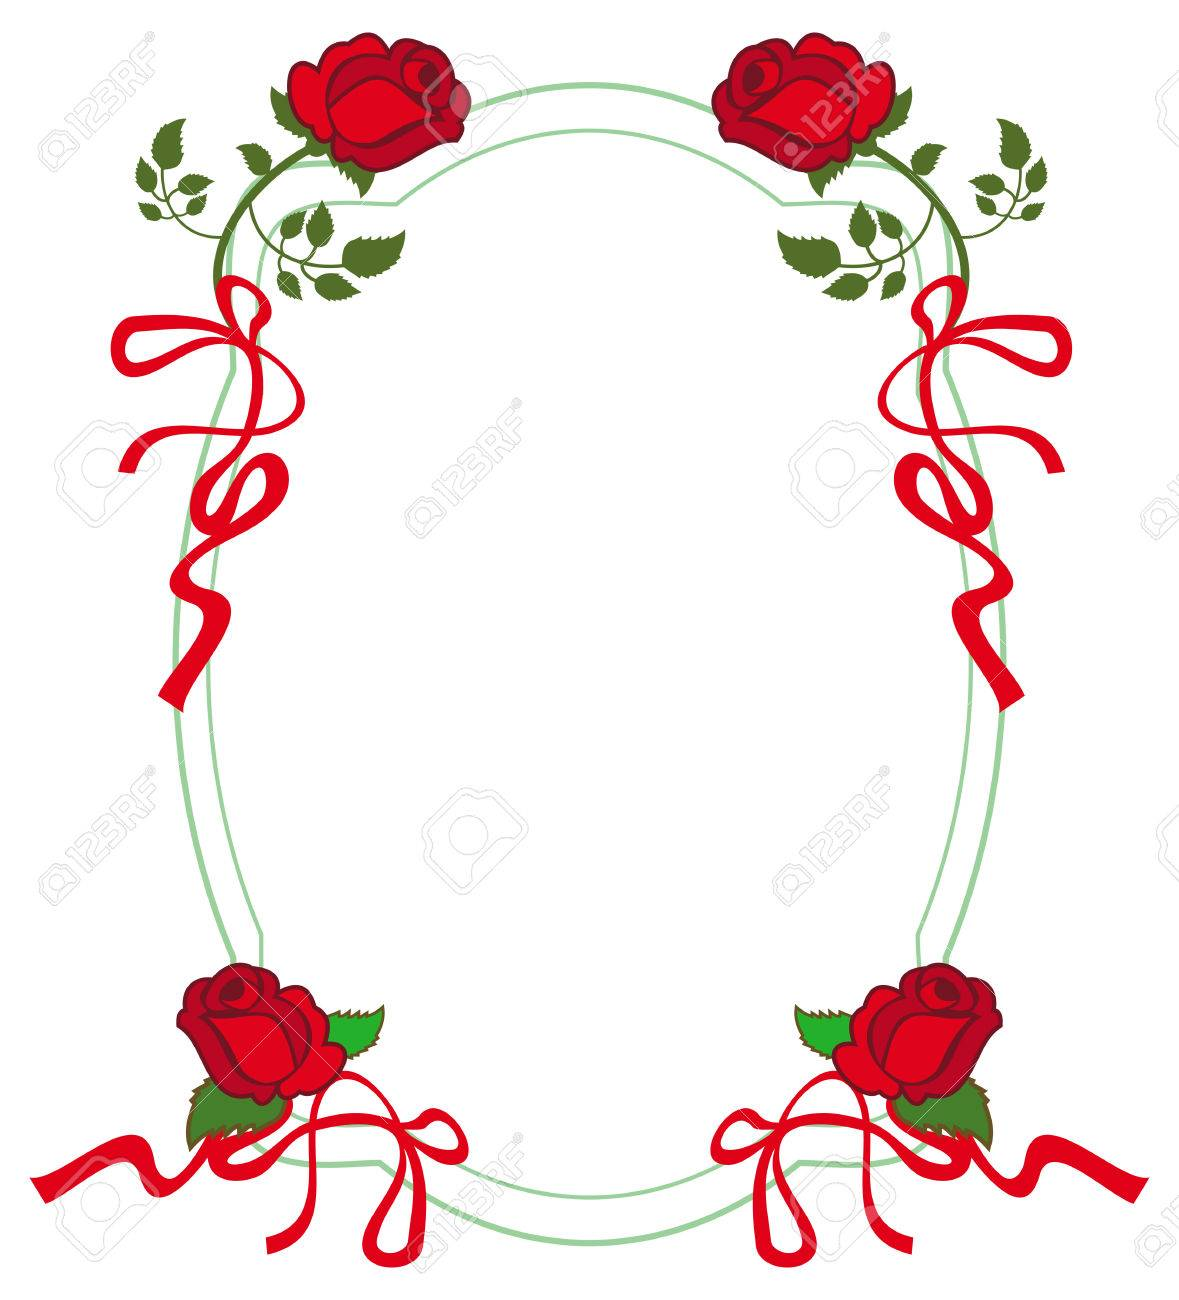 round frame with red roses vector clip art royalty free cliparts rh 123rf com rose vector logo rose vectoriel gratuit